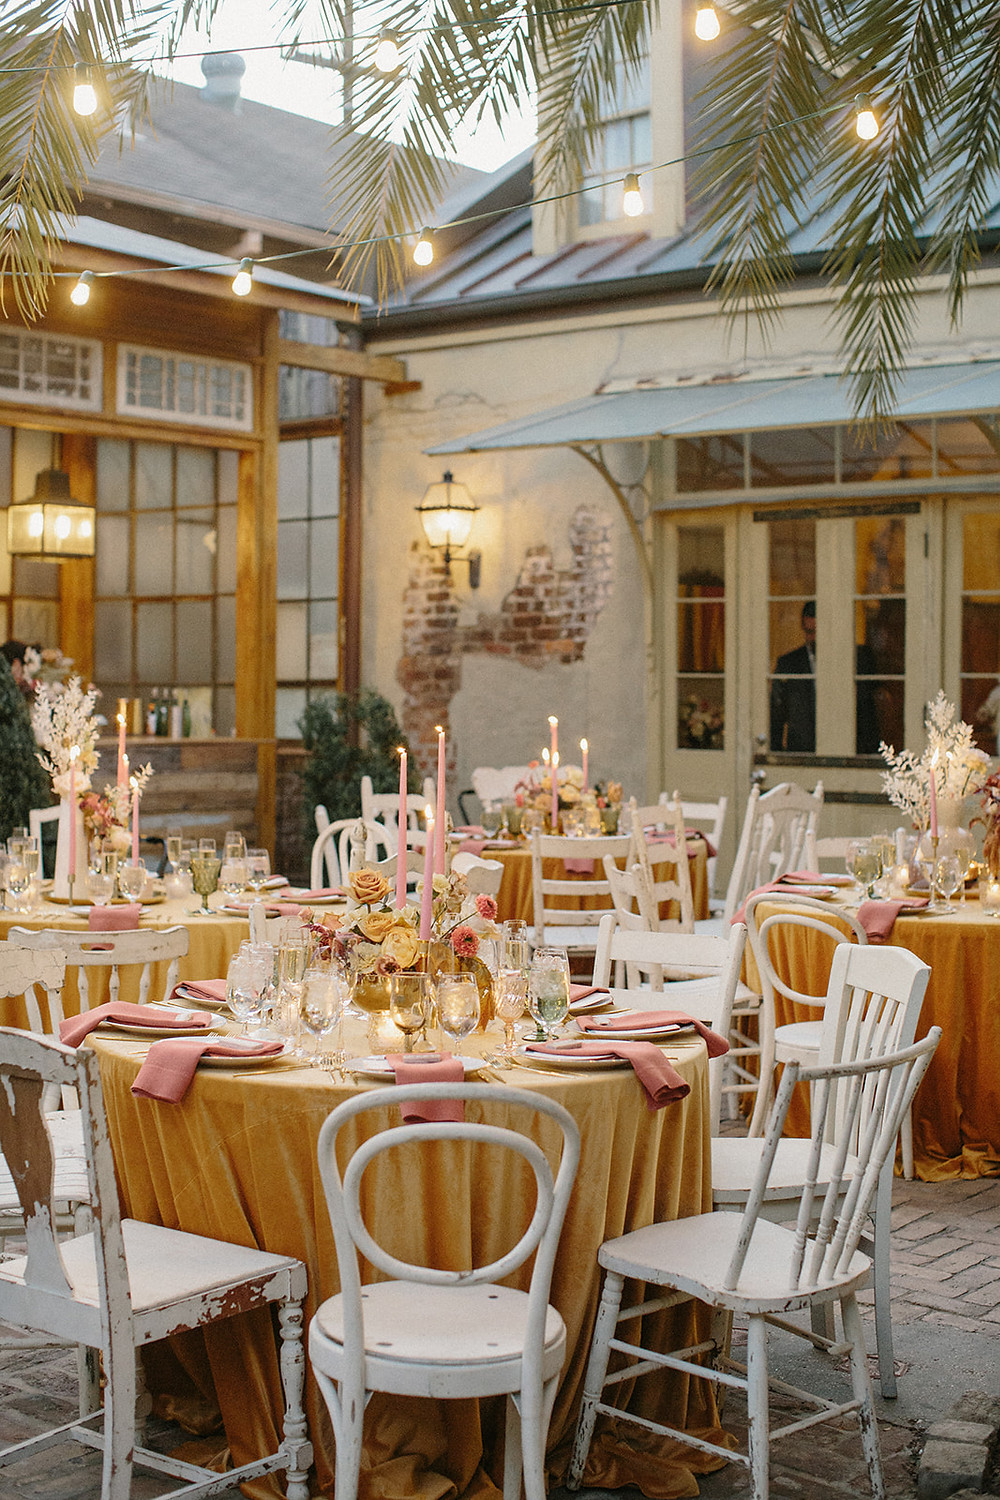 Race & Religious Wedding in New Orleans with Yellow, Pink, and Green Palette with Lovegood Rentals | Race & Religious Wedding in New Orleans with Yellow, Pink, and Green Palette with Lovegood Rentals | Classic Farm Tables, Mismatched Chairs